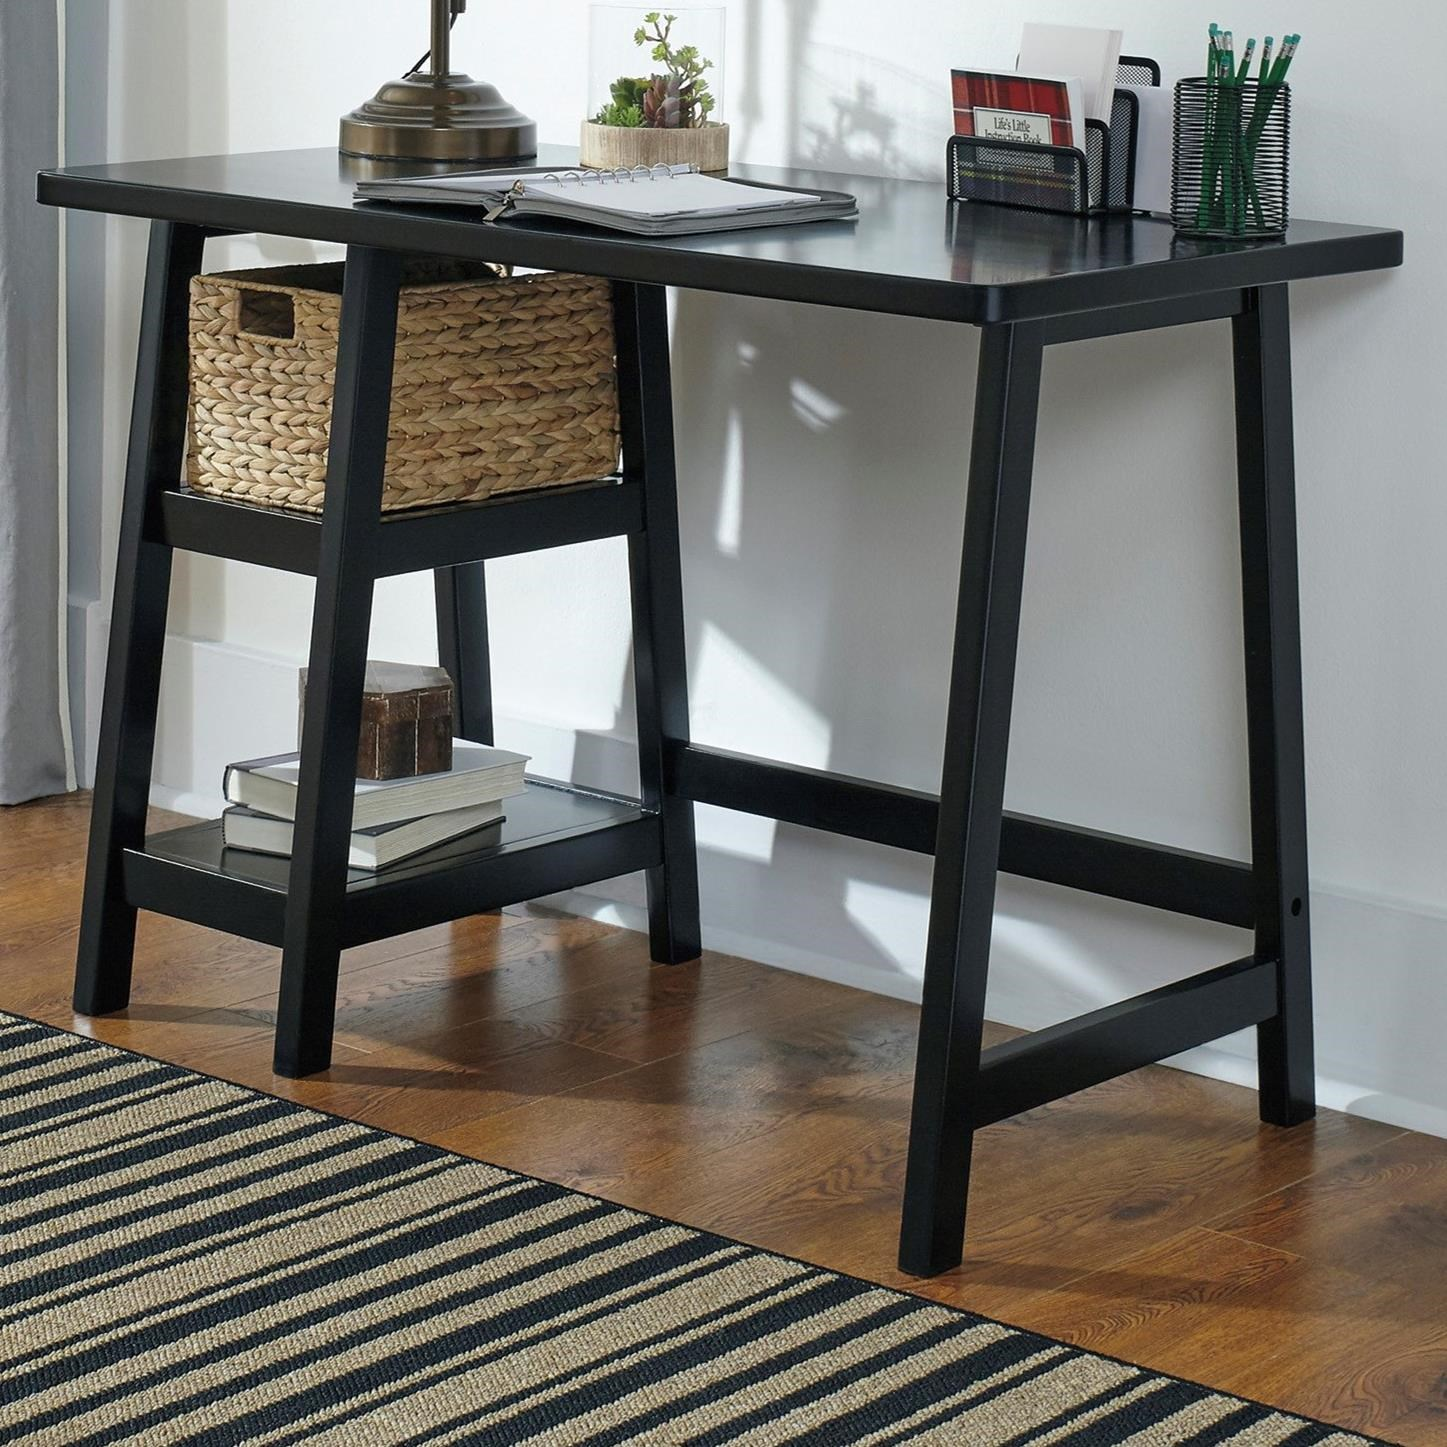 Mirimyn Home Office Small Desk by Signature at Walker's Furniture